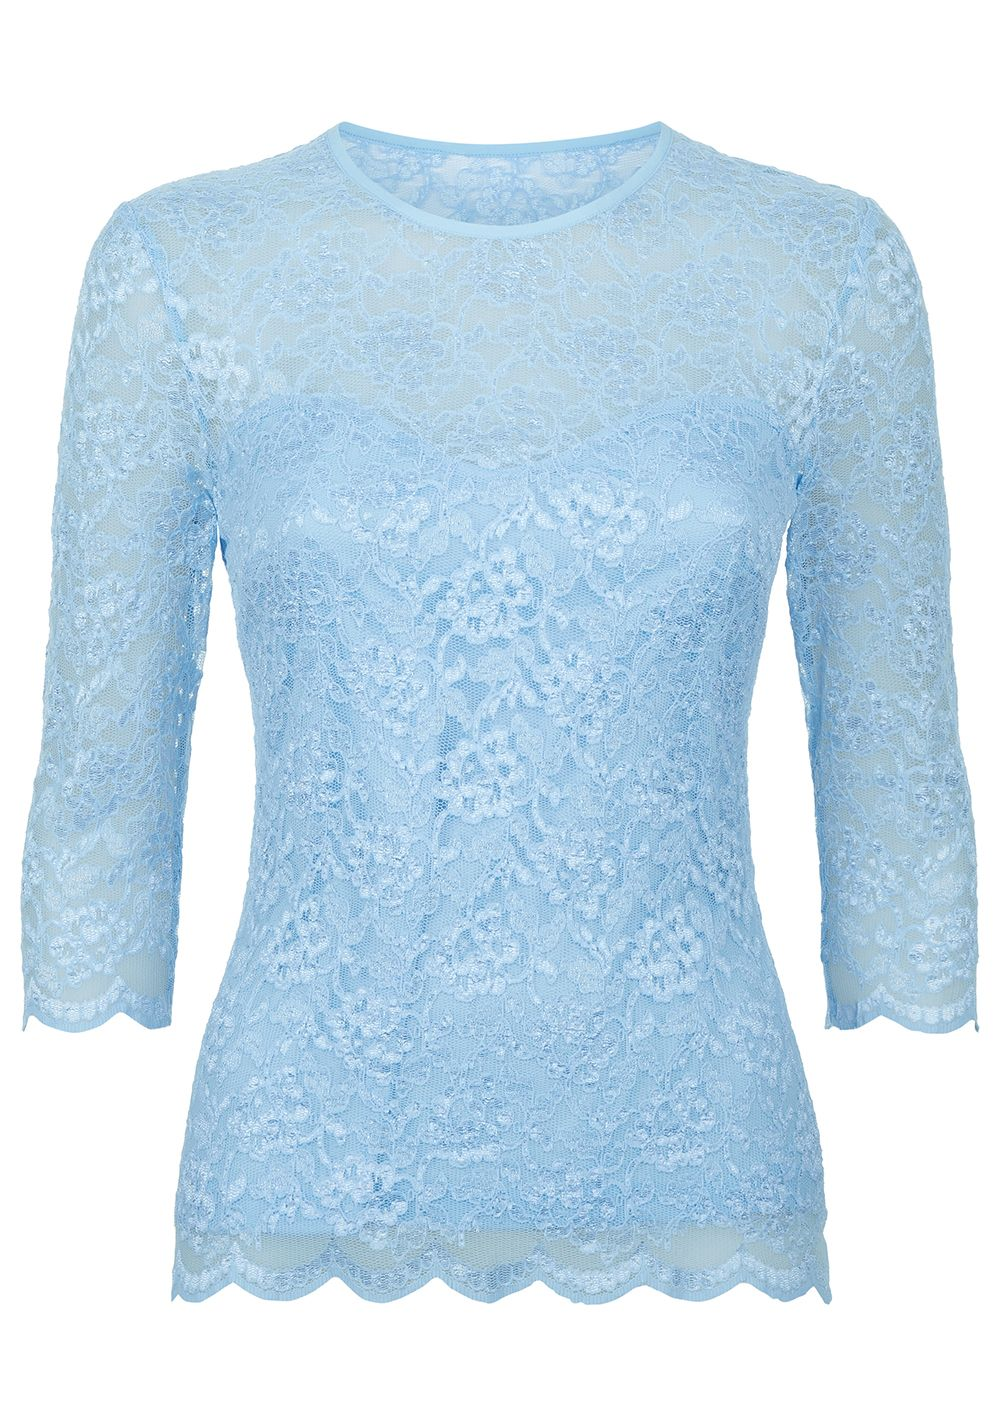 Damsel in a Dress Bern Lace Top, Light Blue